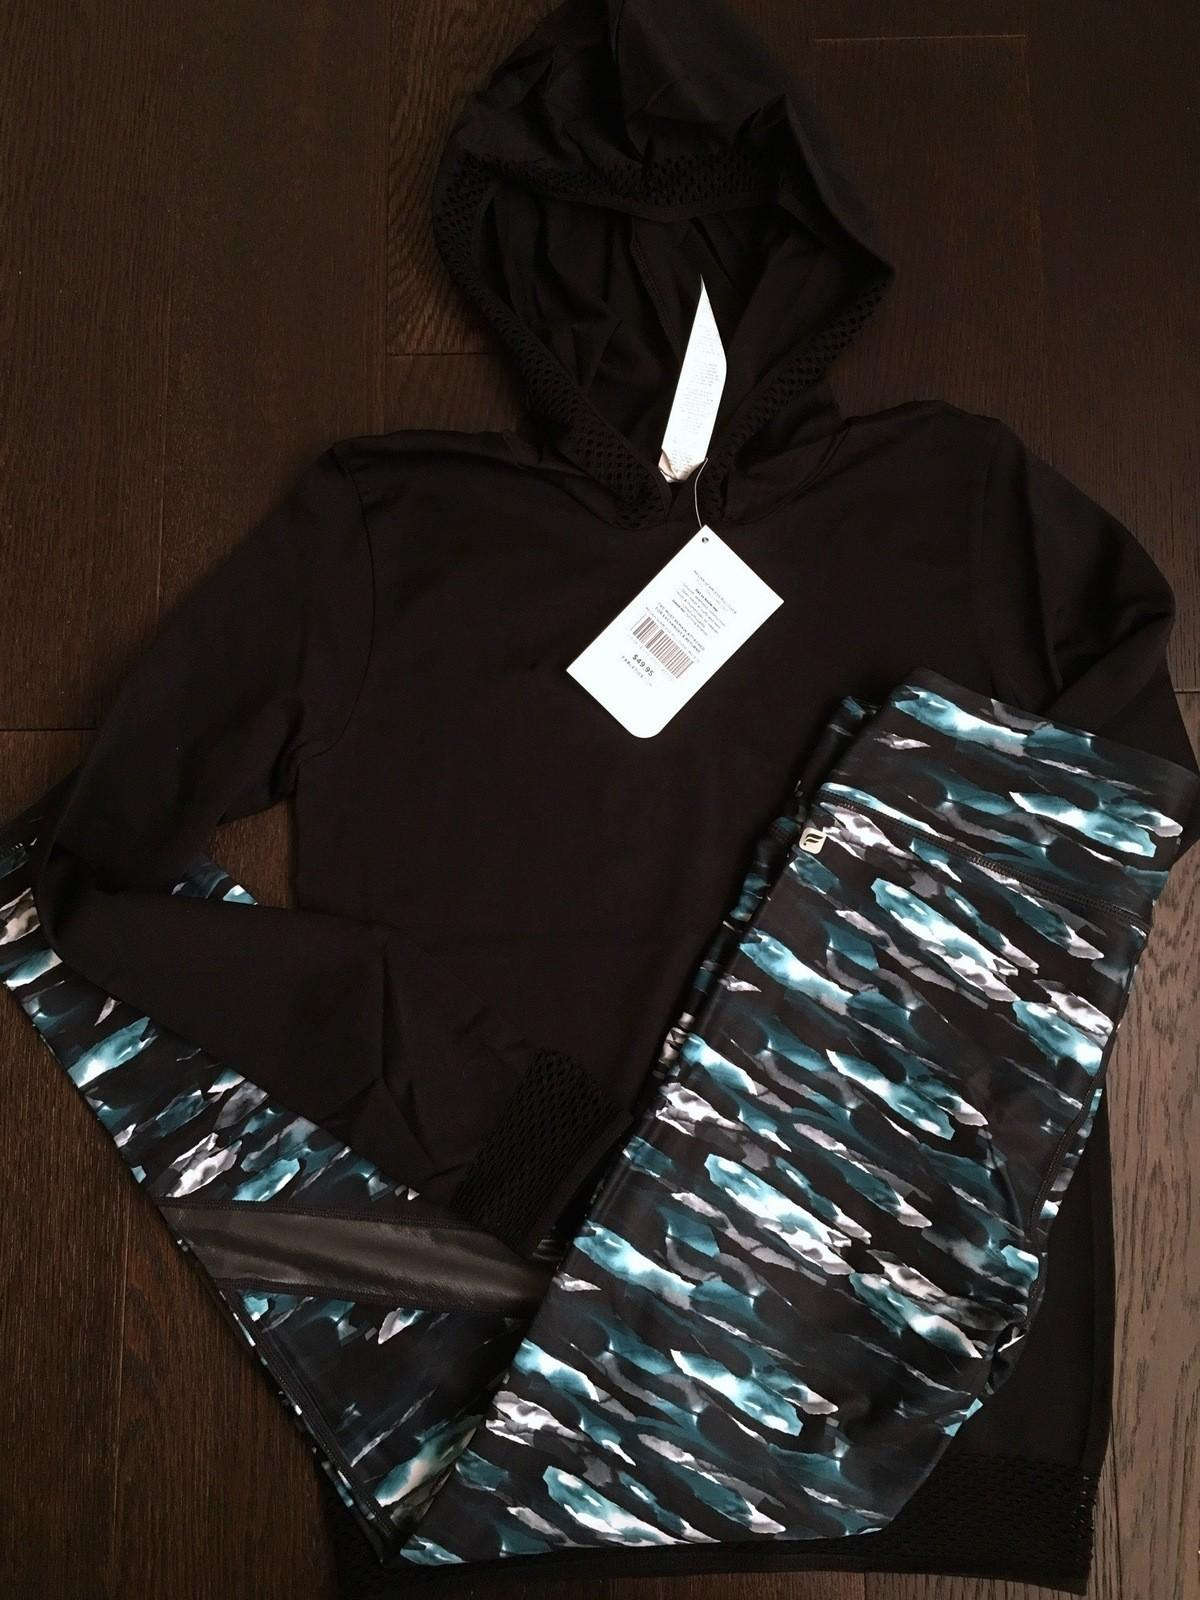 Fabletics Subscription Review – October 2017 + 2 for $24 Leggings Offer